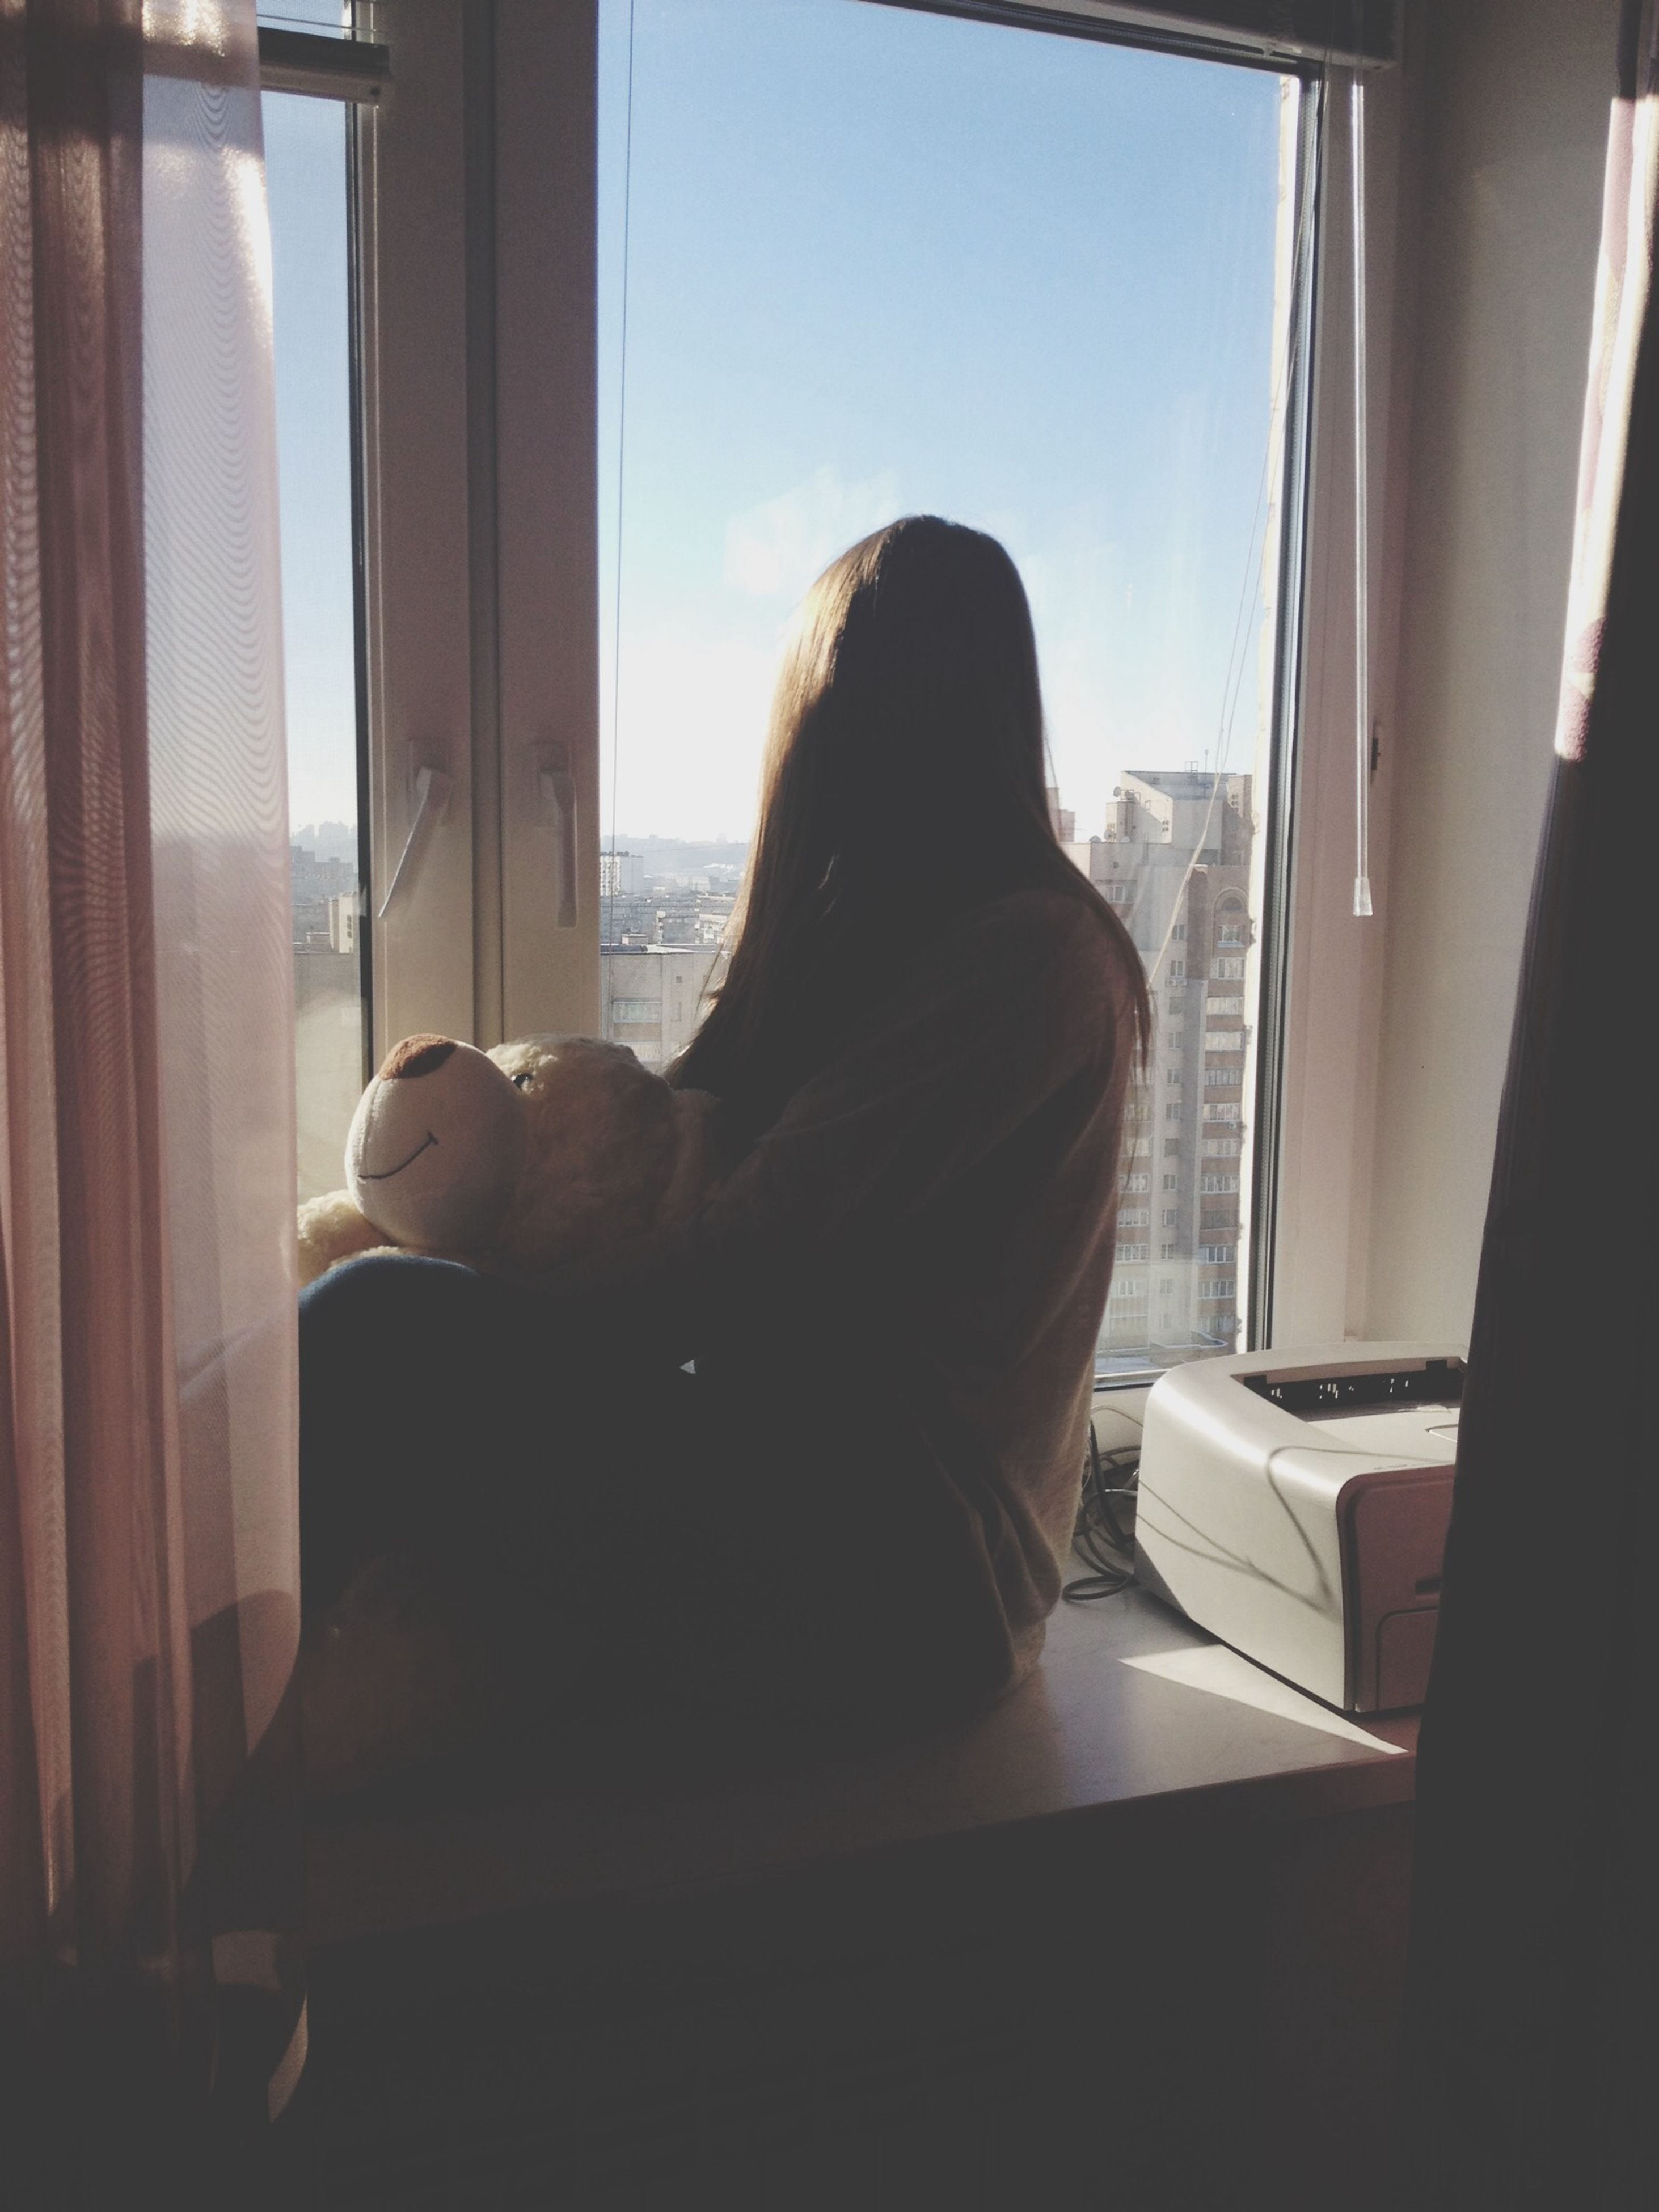 indoors, window, home interior, looking through window, lifestyles, sitting, rear view, glass - material, curtain, transparent, leisure activity, relaxation, domestic room, domestic life, person, waist up, long hair, casual clothing